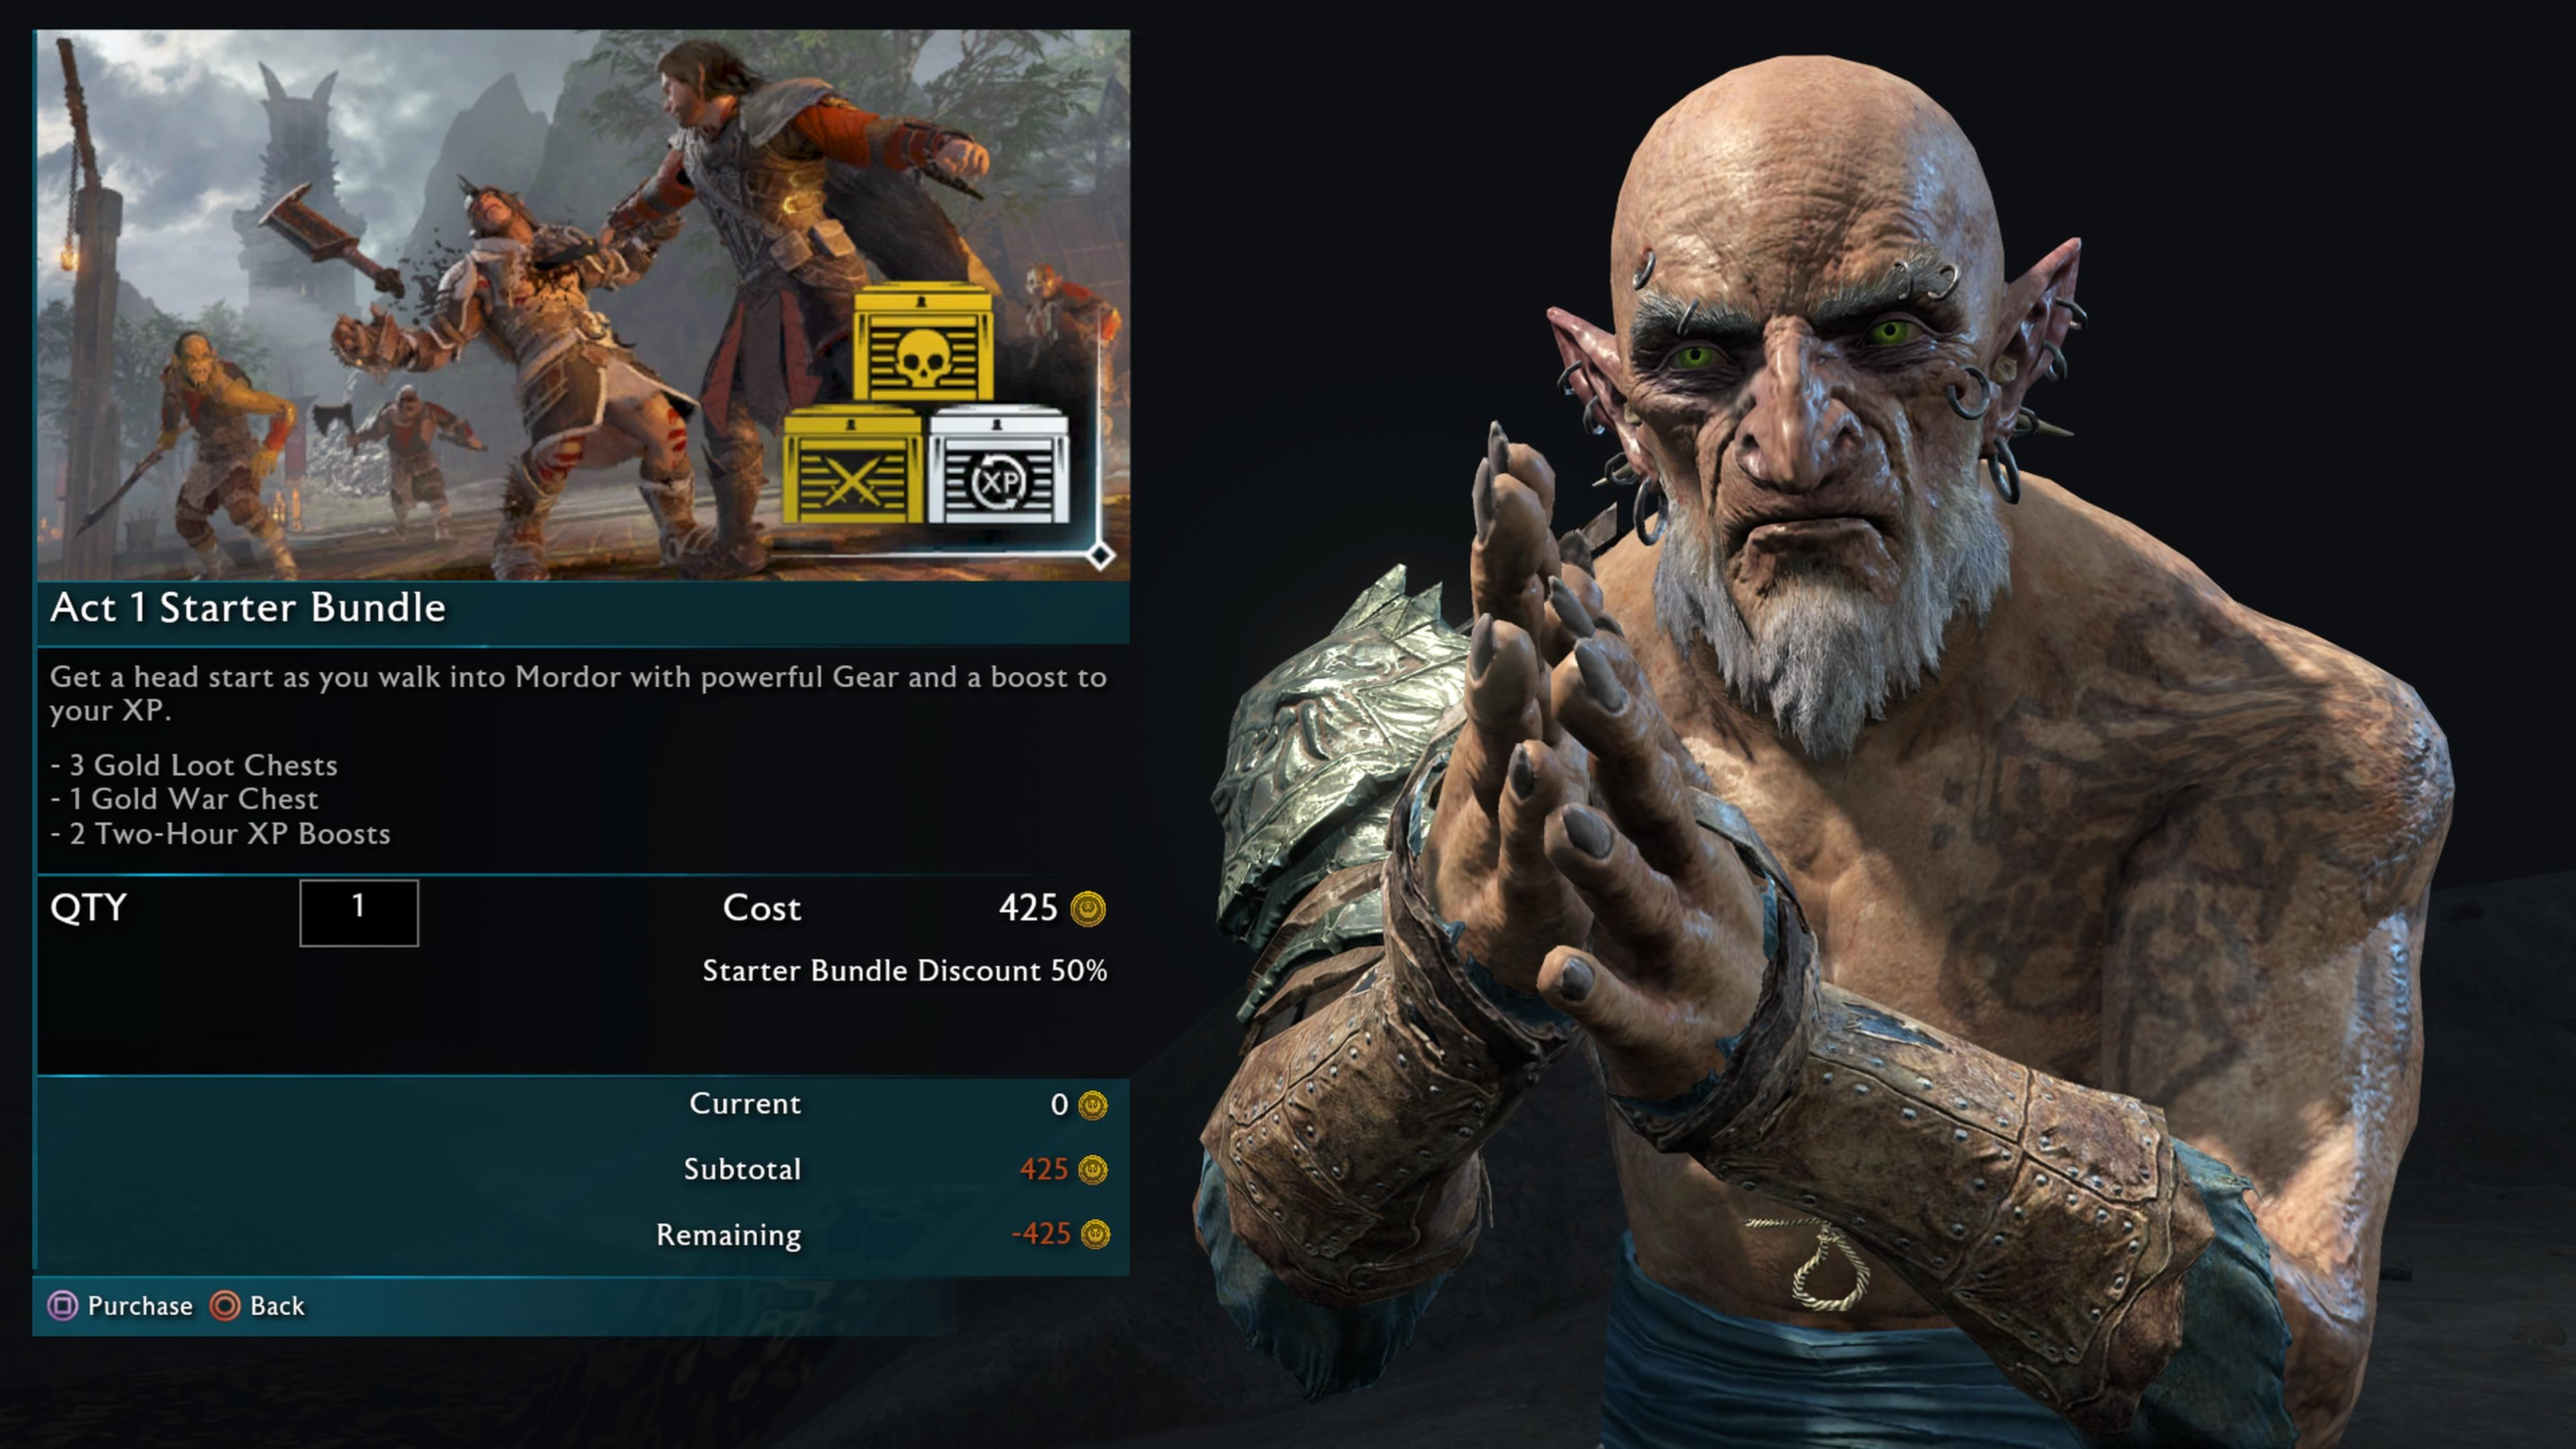 Shadow of War controversially introduced loot boxes into their single player title